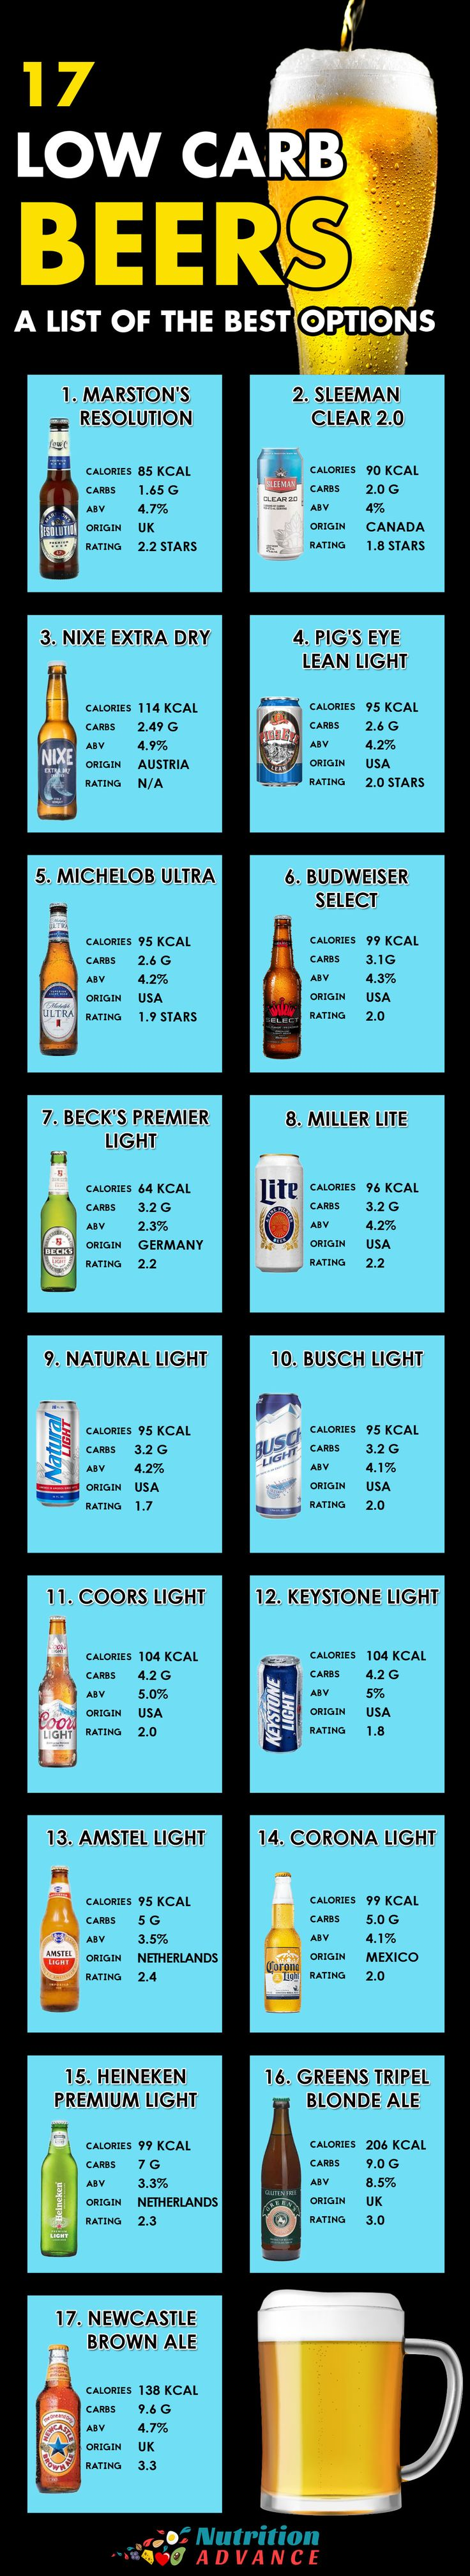 What Are the Best Low Carb Beers? Here are 17 beers that contain minimal amounts of carbohydrate - both lager and ale. You can see the calorie, alcohol volume and carbohydrate count per bottle. All these beers are OK for low carb and keto diets. Read the full article at: https://nutritionadvance.com/low-carb-beer #lowcarb #beer #lowcarbbeer #ketodiet #ketofriendly